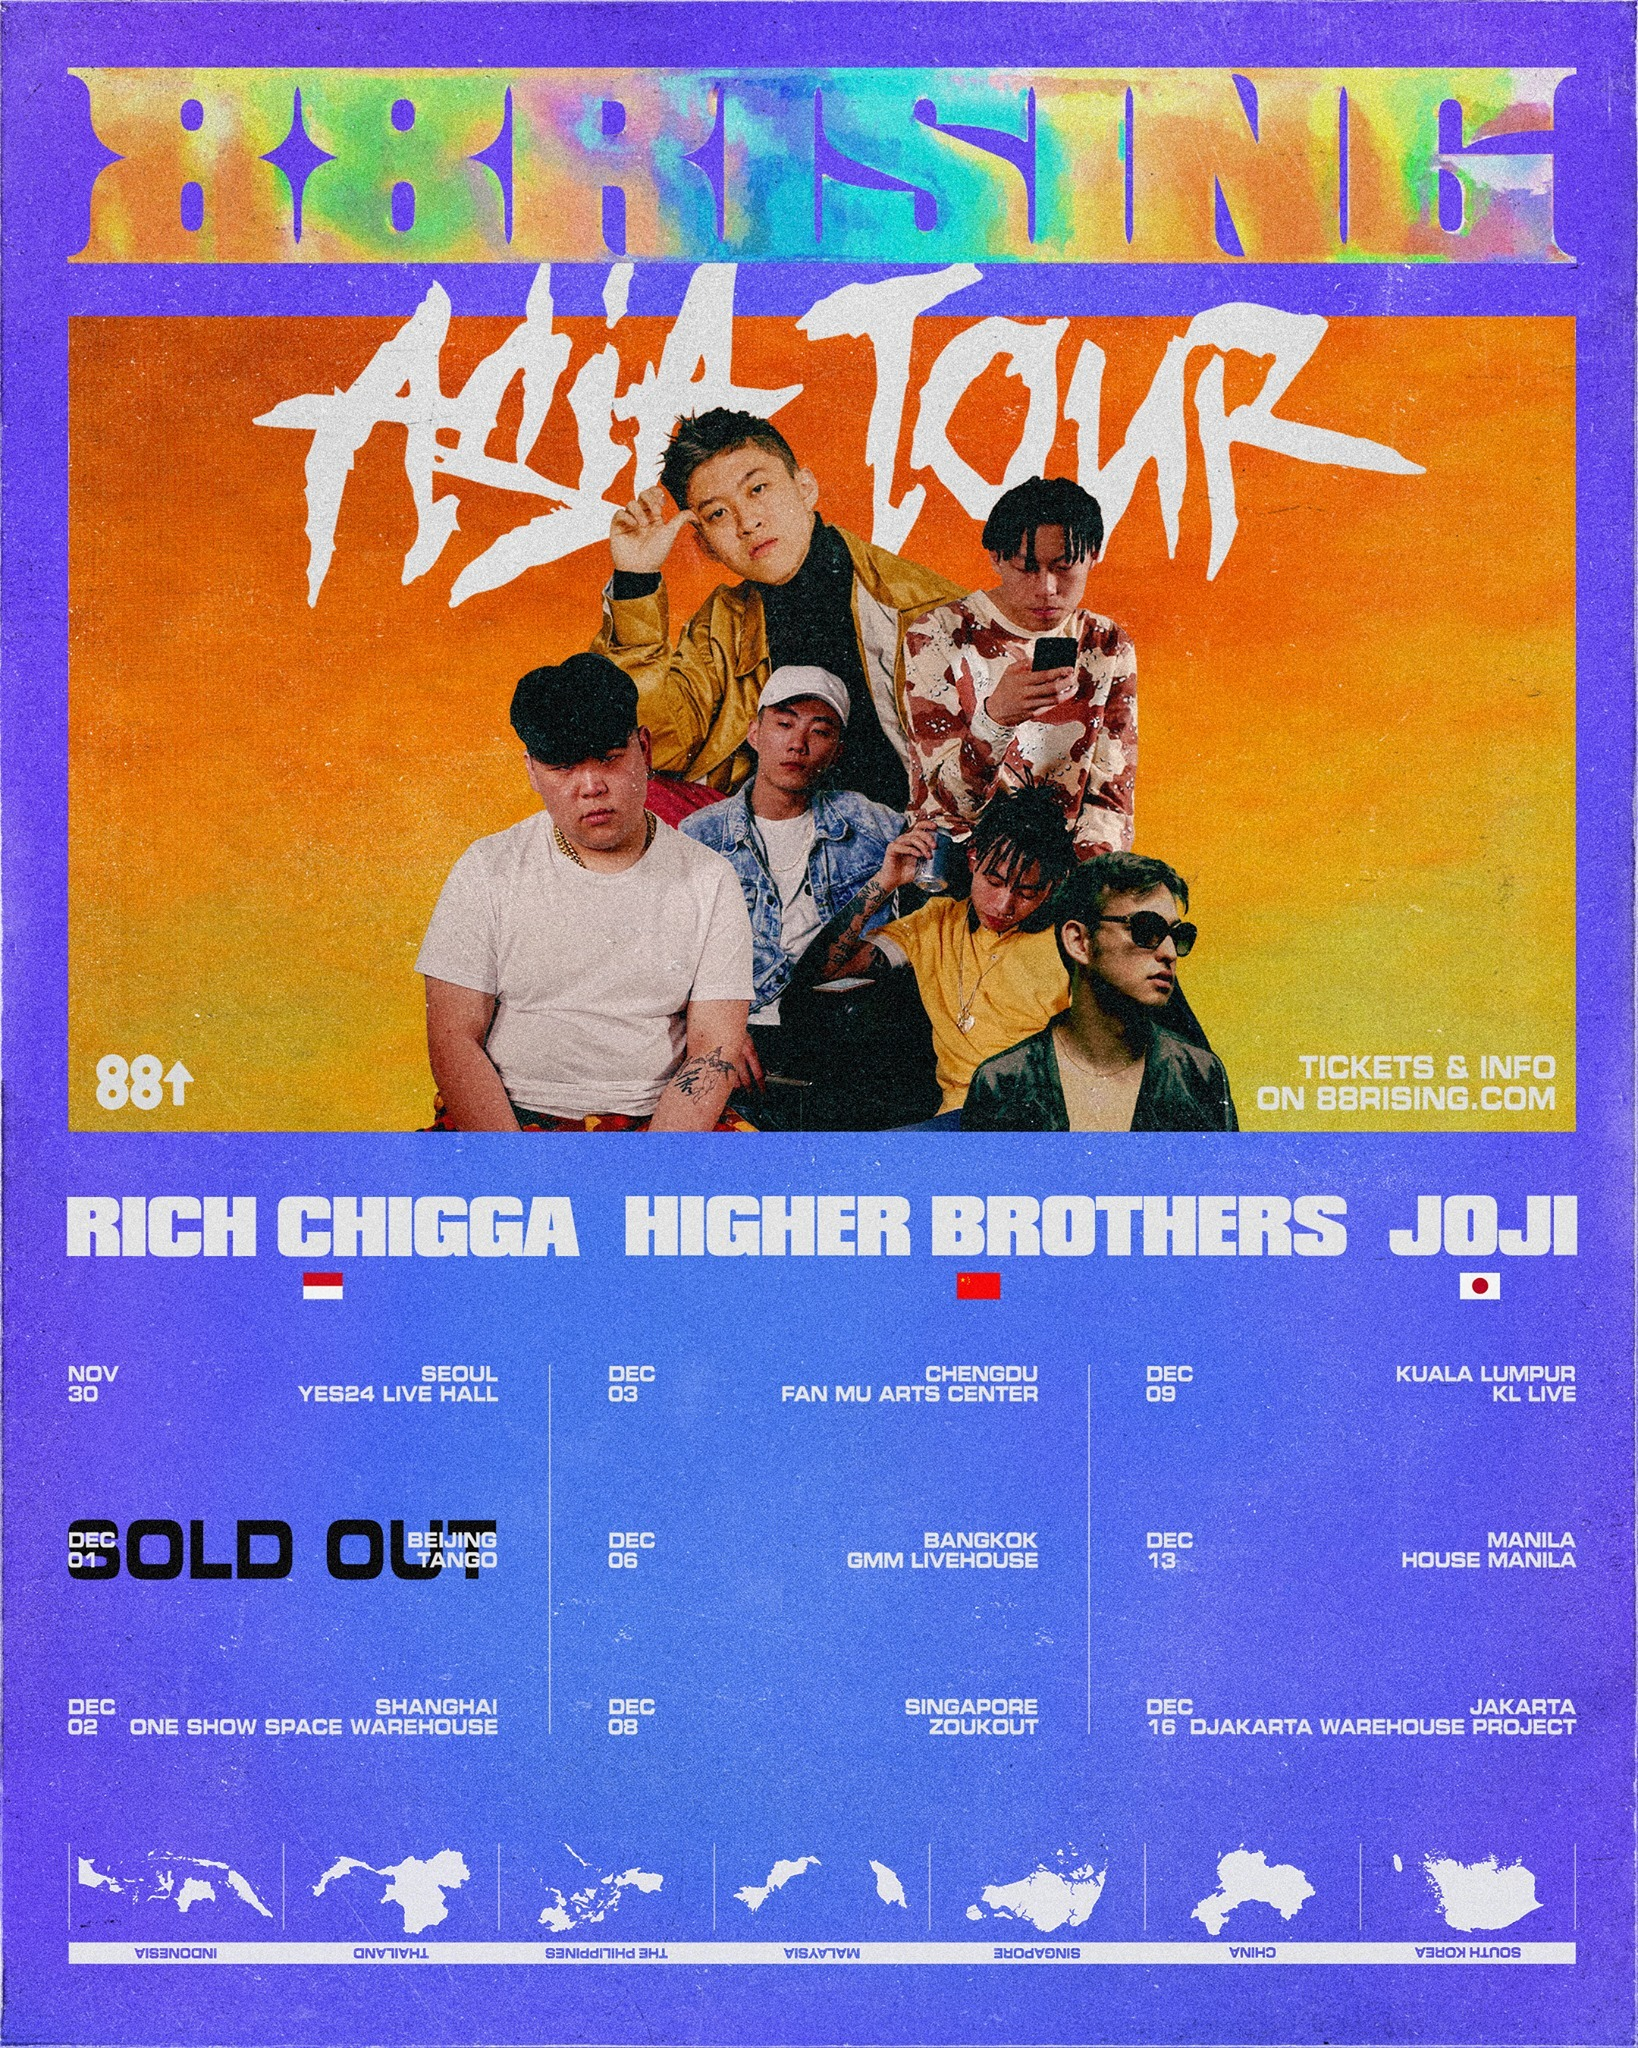 88rising Are Taking Over Asia With A Full Tour Rich Chigga Joji Tiket Dwp Djakarta Warehouse Project 2017 2 Day Pass Comments